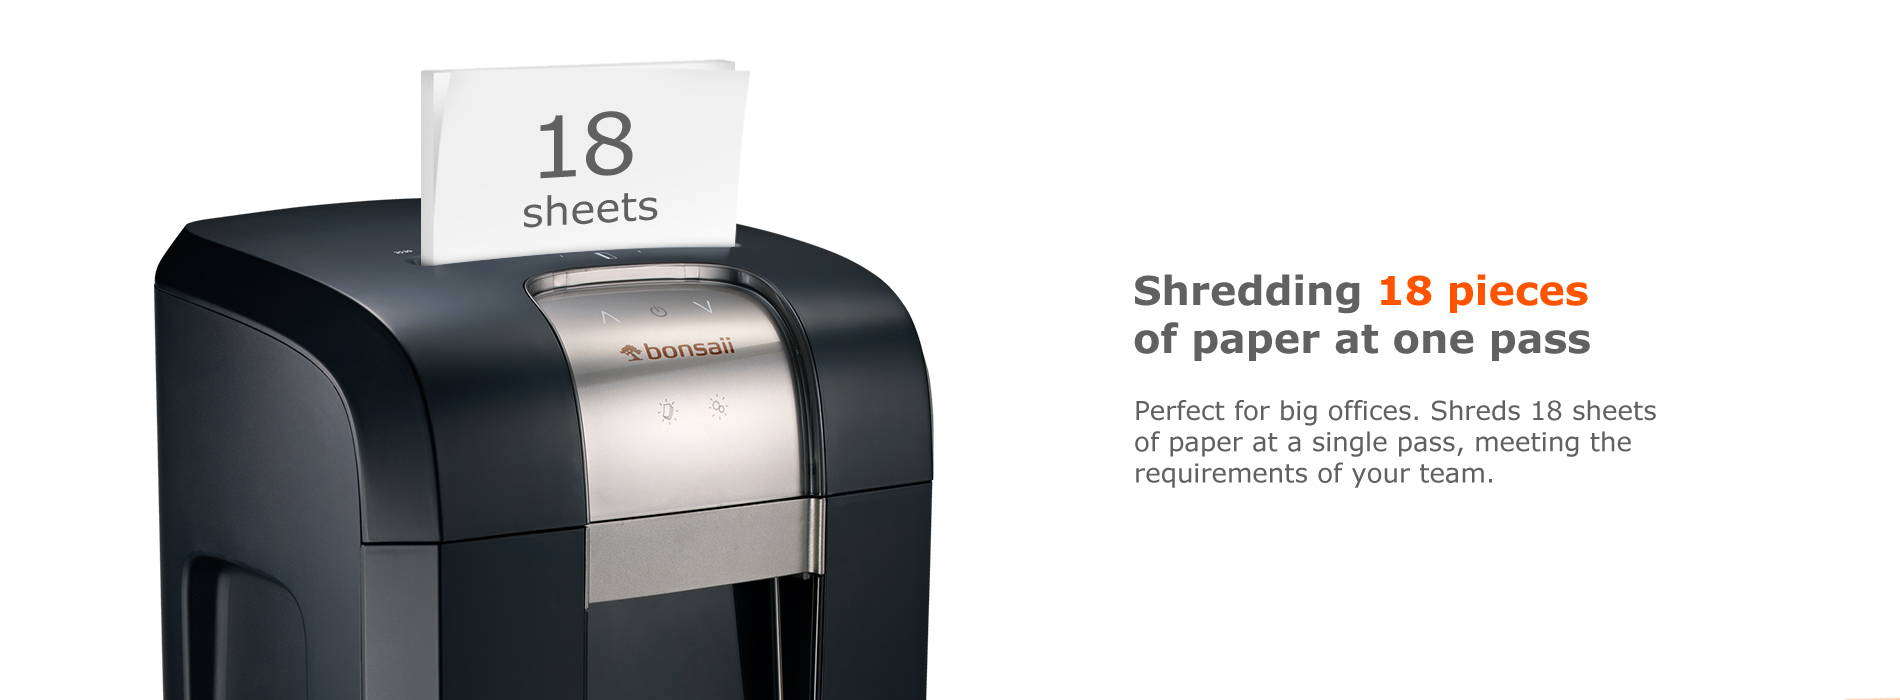 Shredding 18 pieces of paper at one pass  Perfect for big offices. Shreds 18 sheets of paper at a single pass, meeting the requirements of your team.